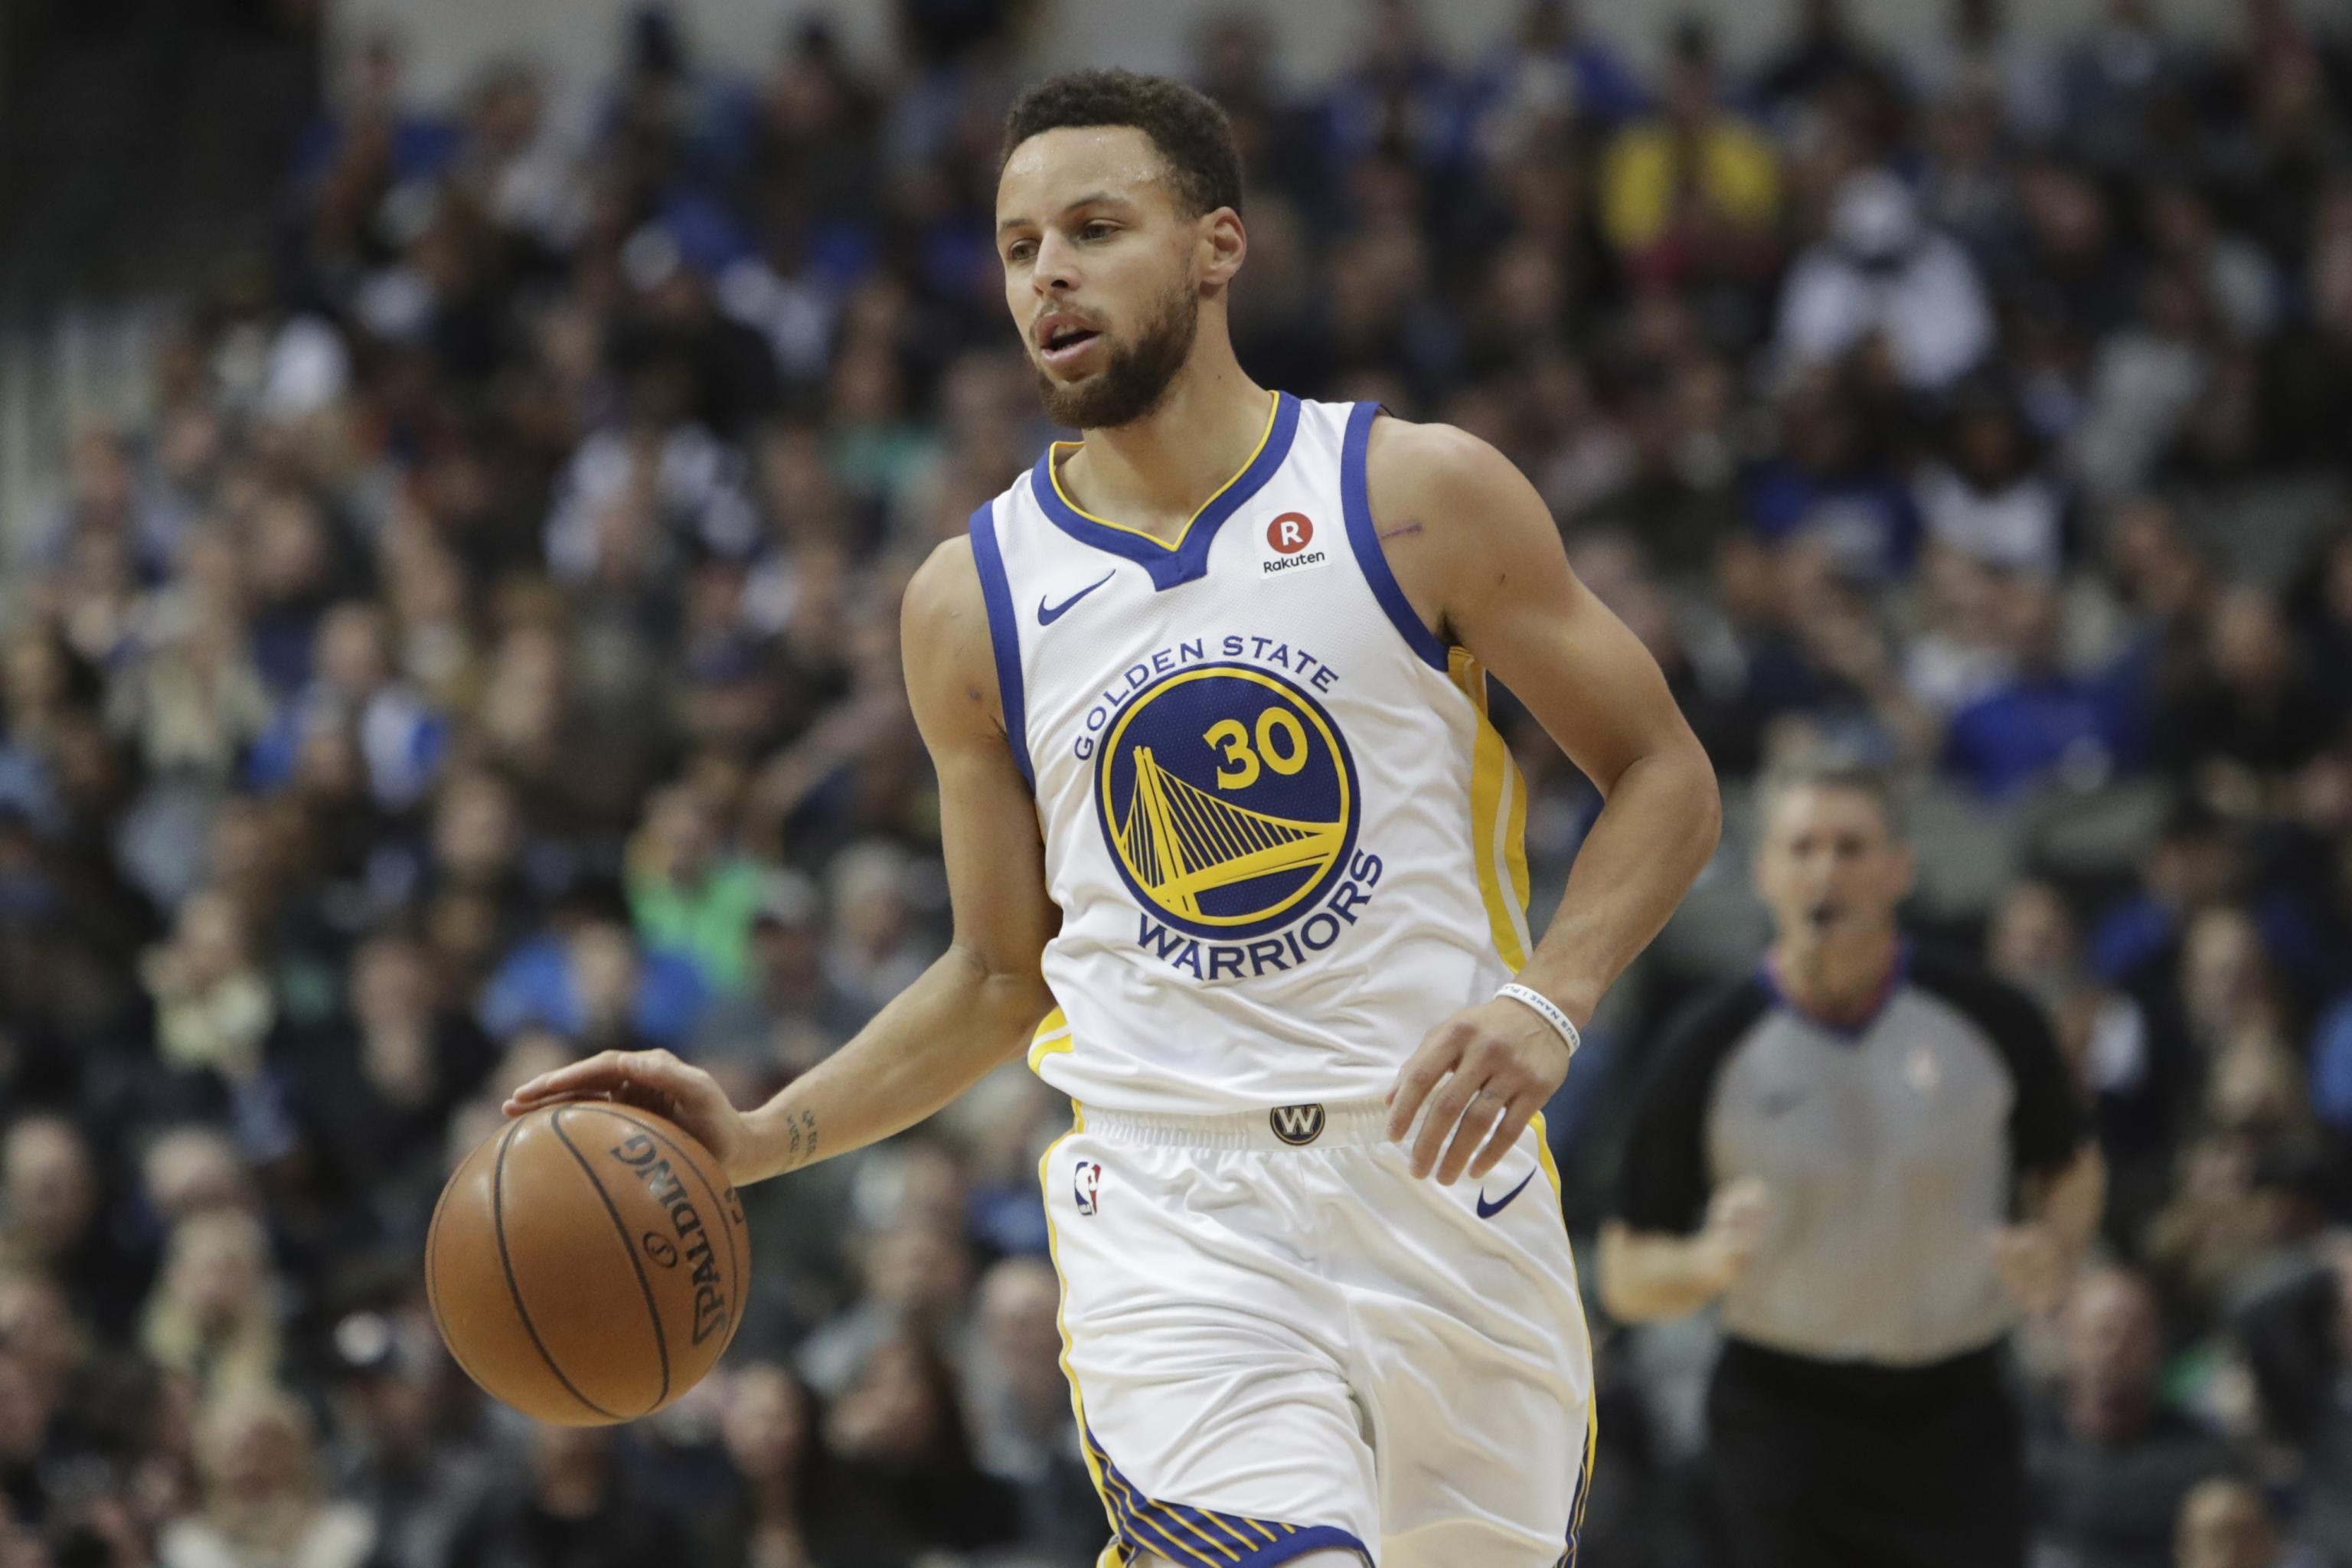 Nba betting trends analysis gerald betting odds on x factor 2021 australia